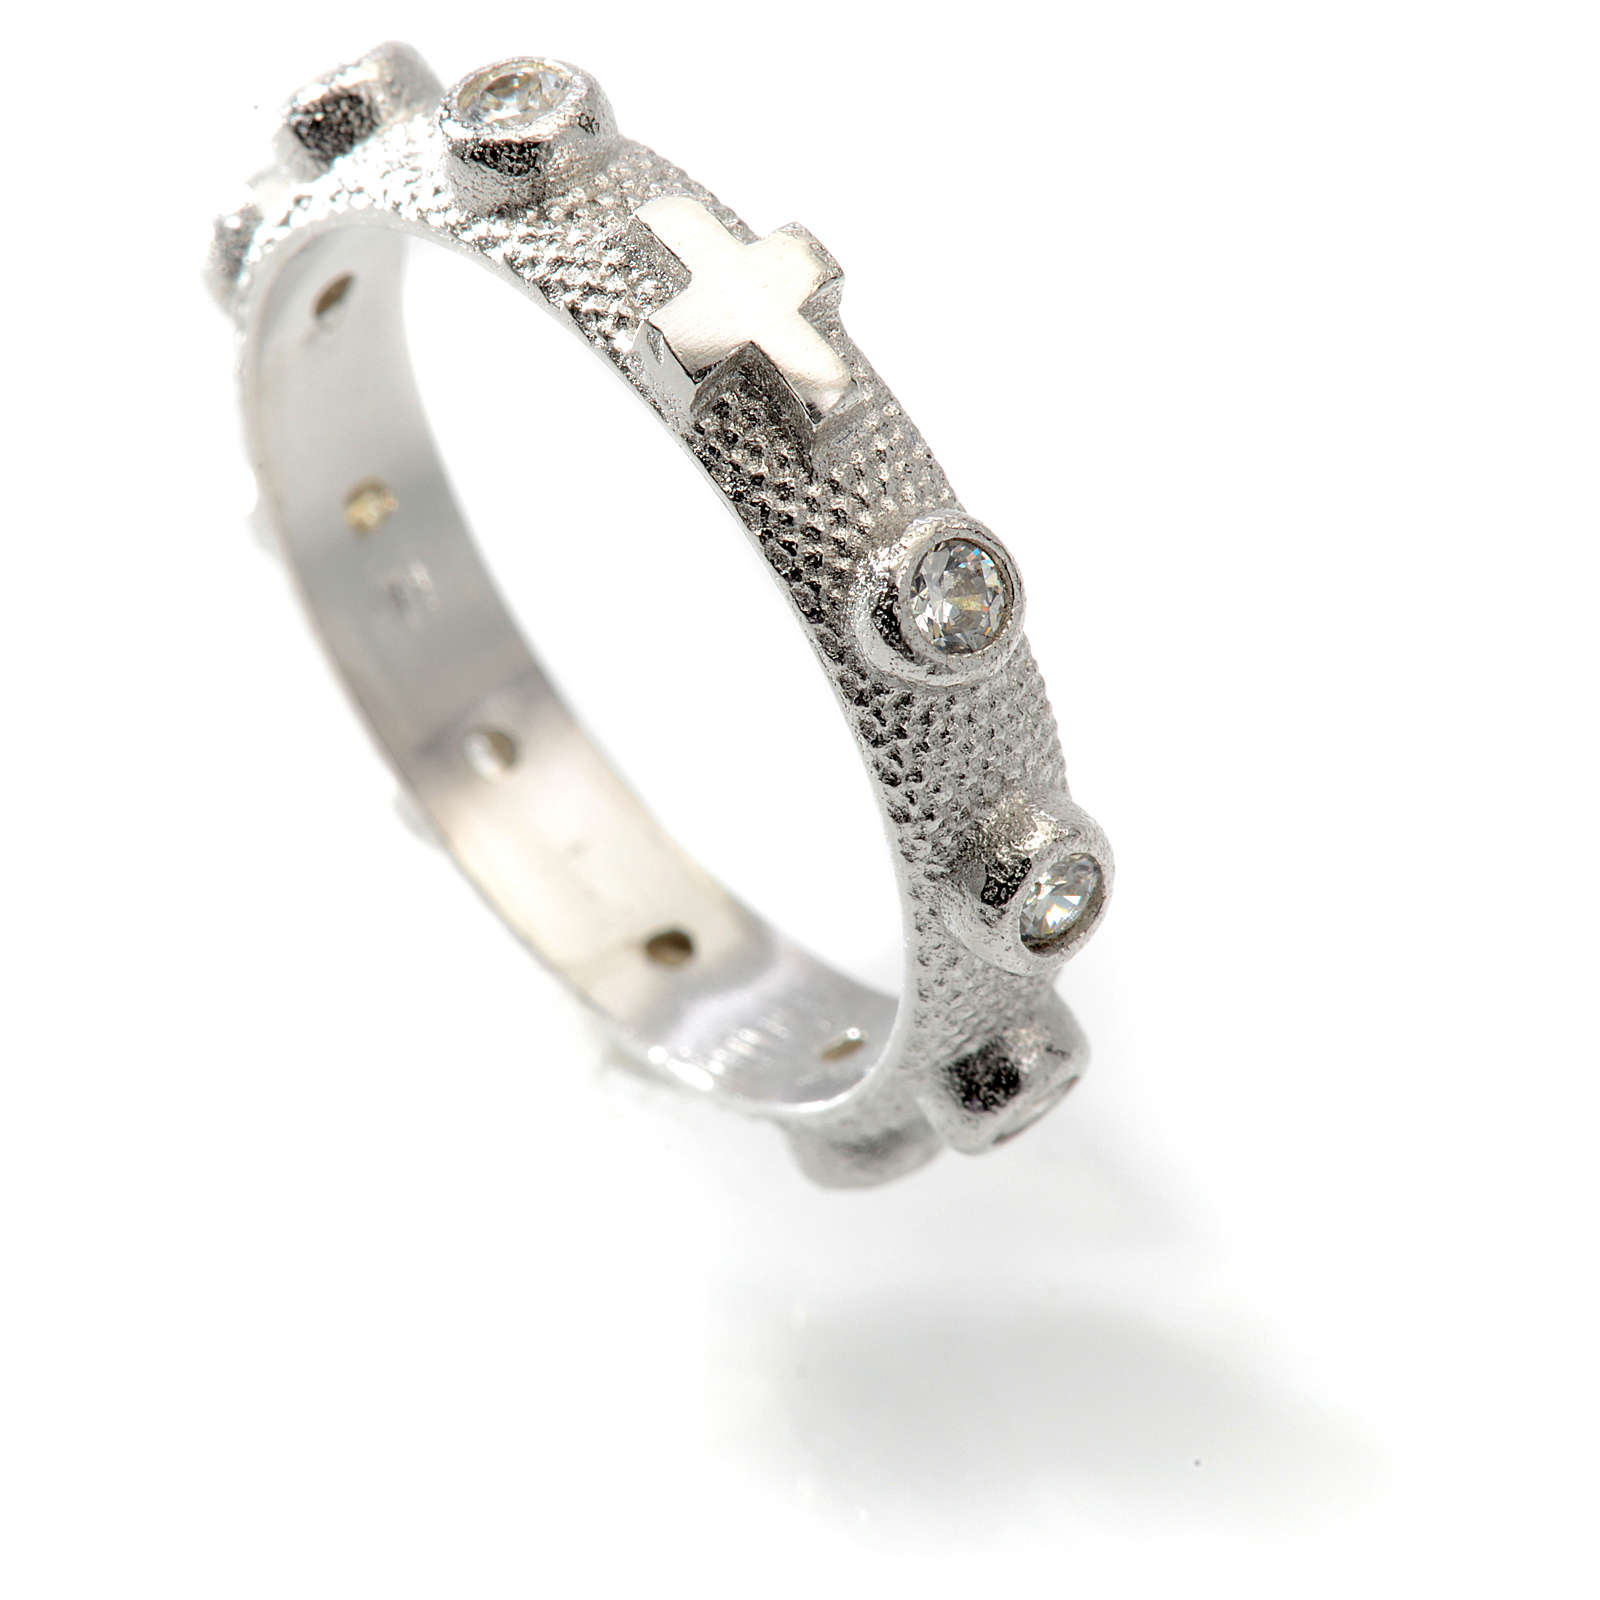 Prayer ring single decade in 800 silver and white zircon 3